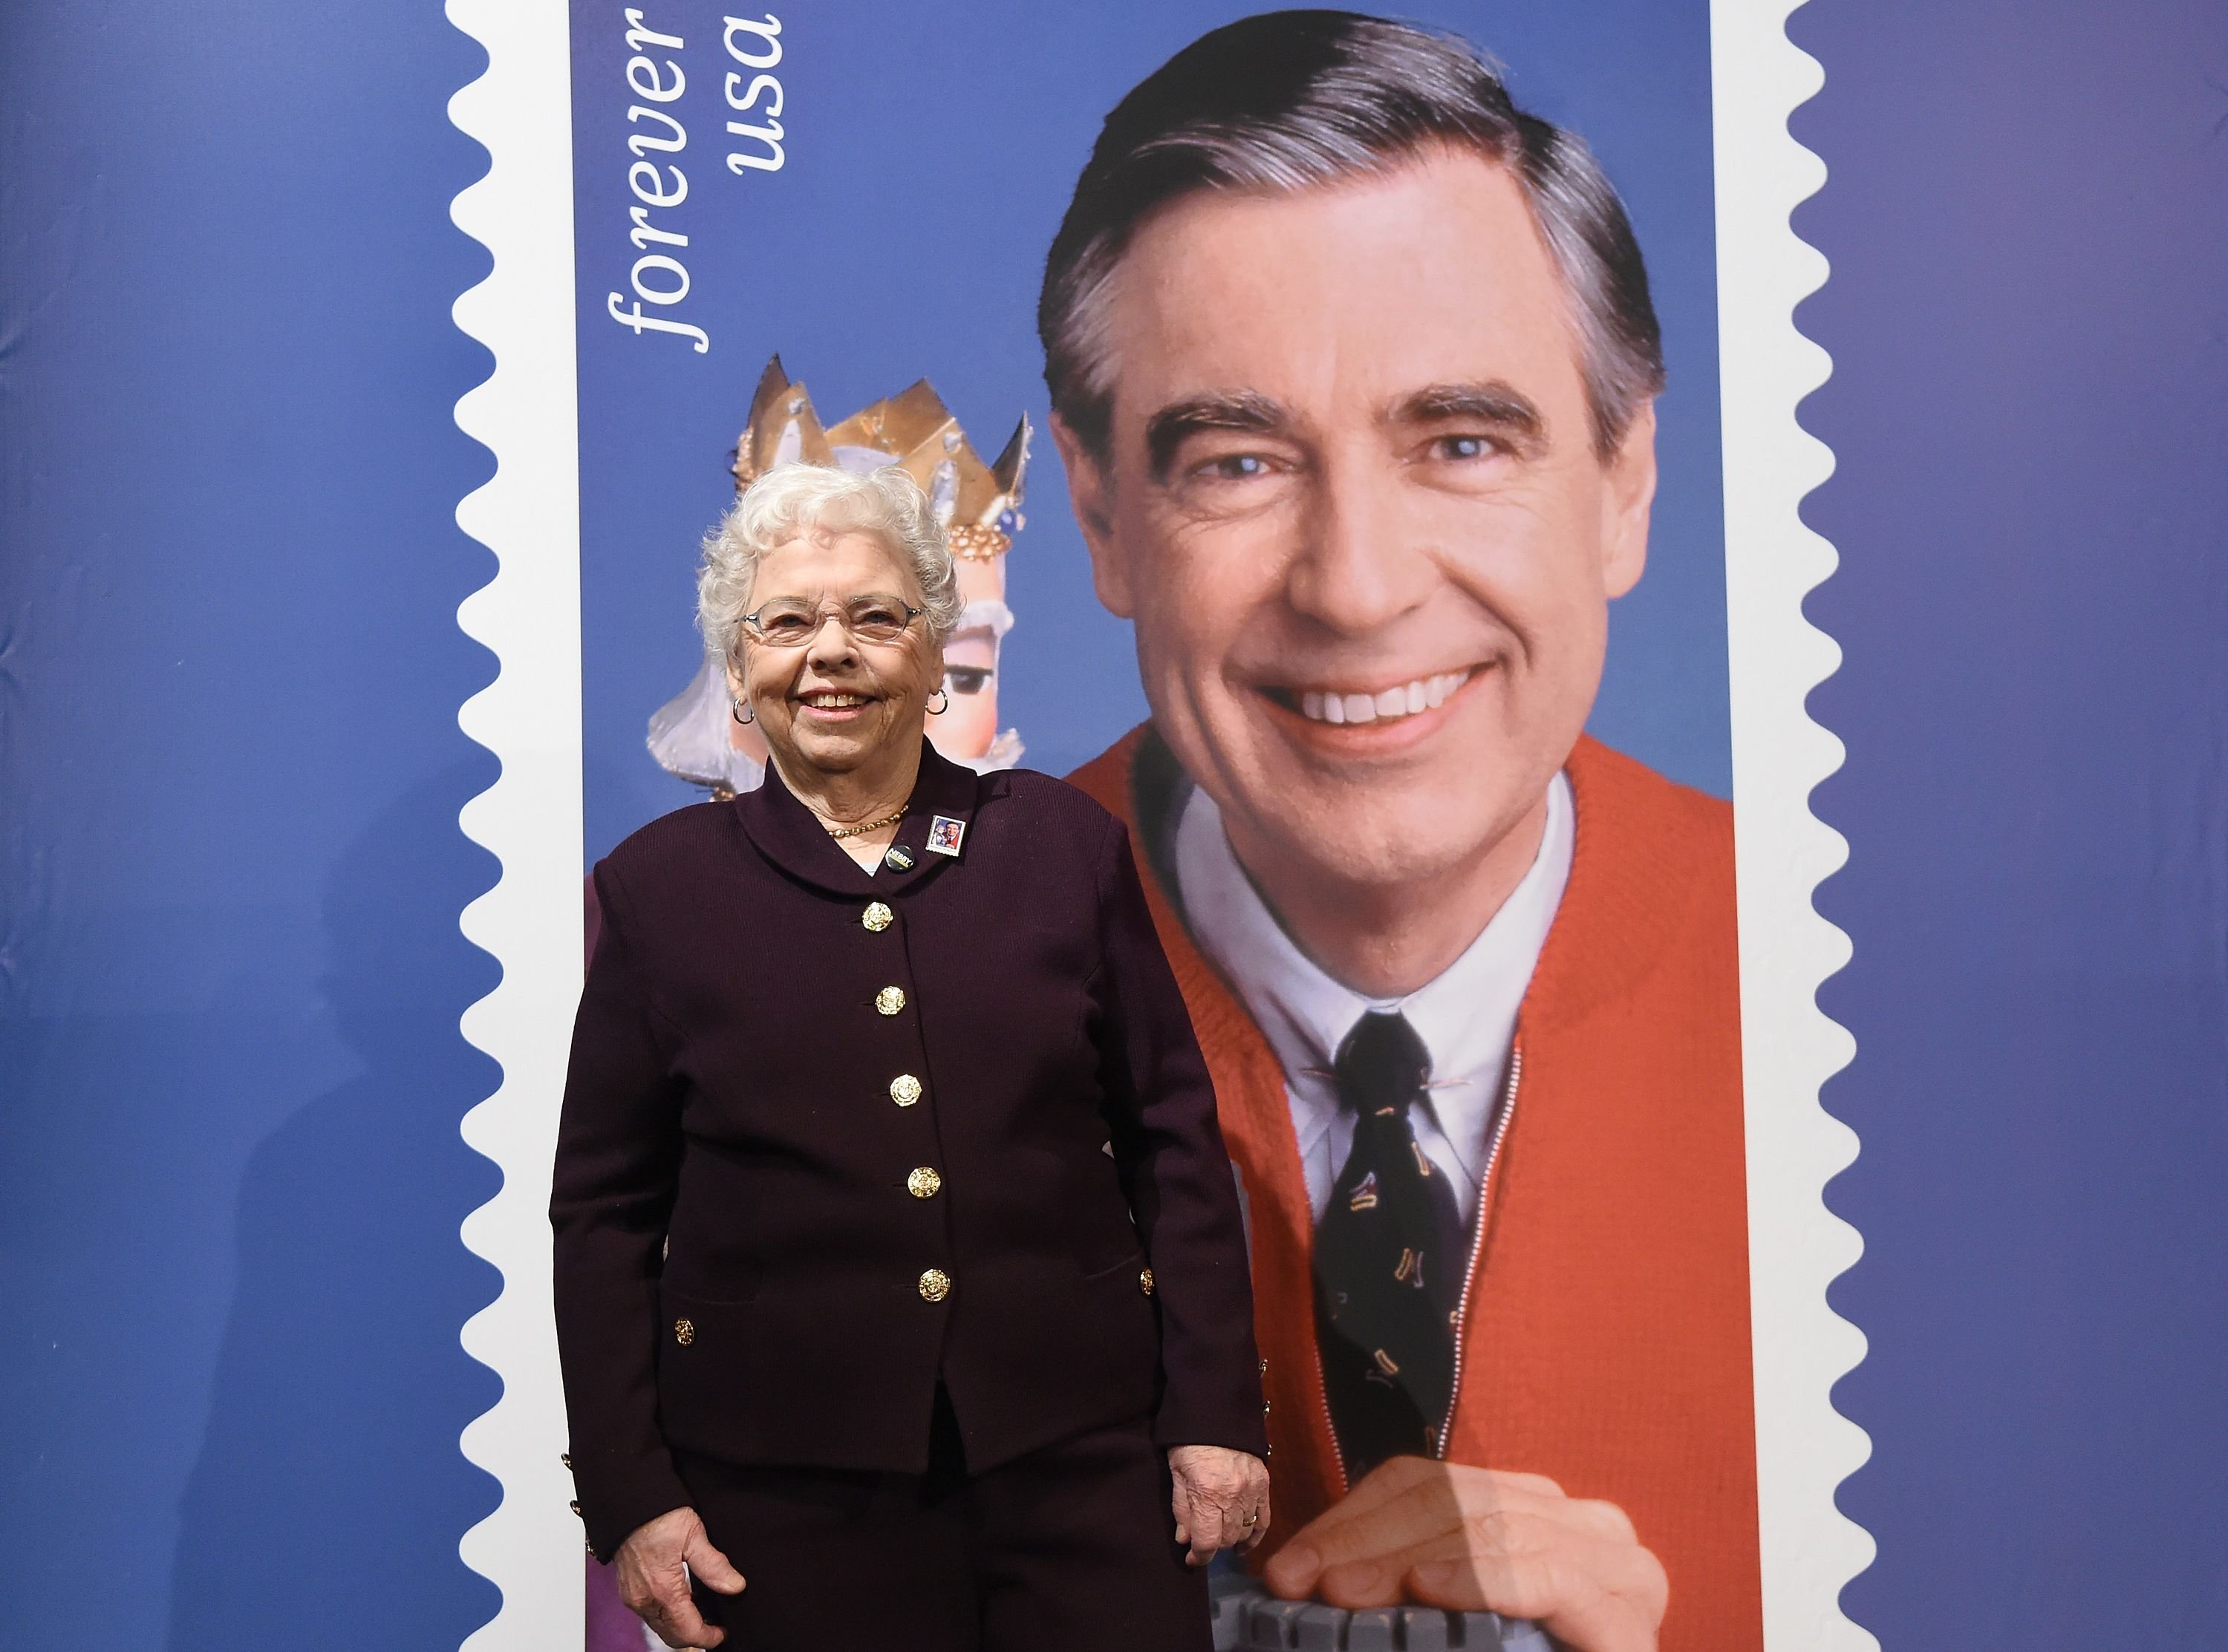 Joanne Rogers at the U.S. Postal Service Dedication of the Mister Rogers Forever Stamp at WQED's Fred Rogers Studio on March 23, 2018 | Photo: Getty Images